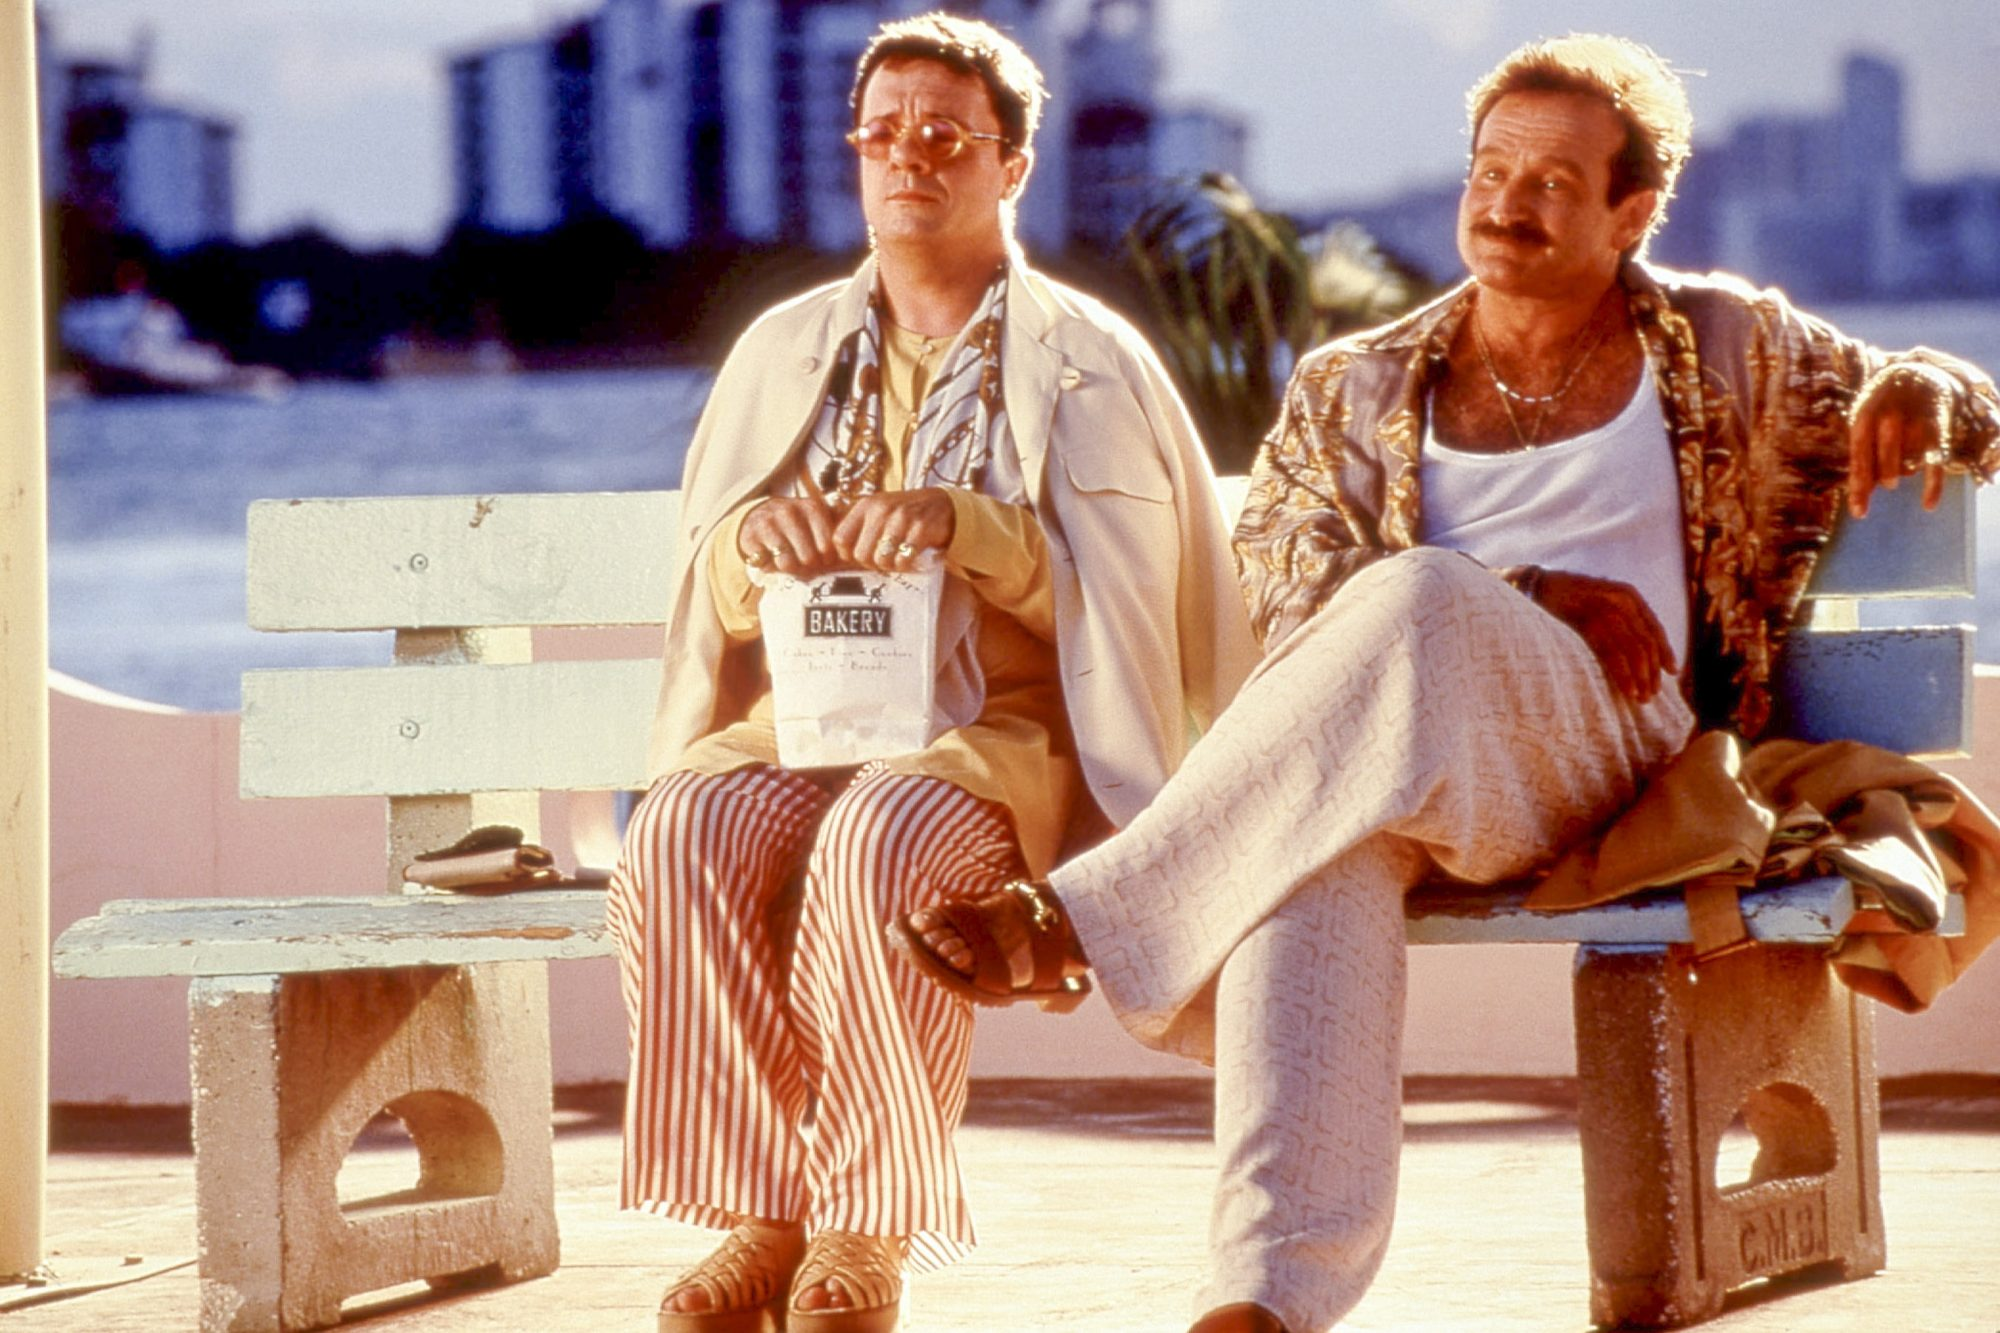 THE BIRDCAGE, Nathan Lane, Robin Williams, 1996, © United Artists / Courtesy Everett Collection